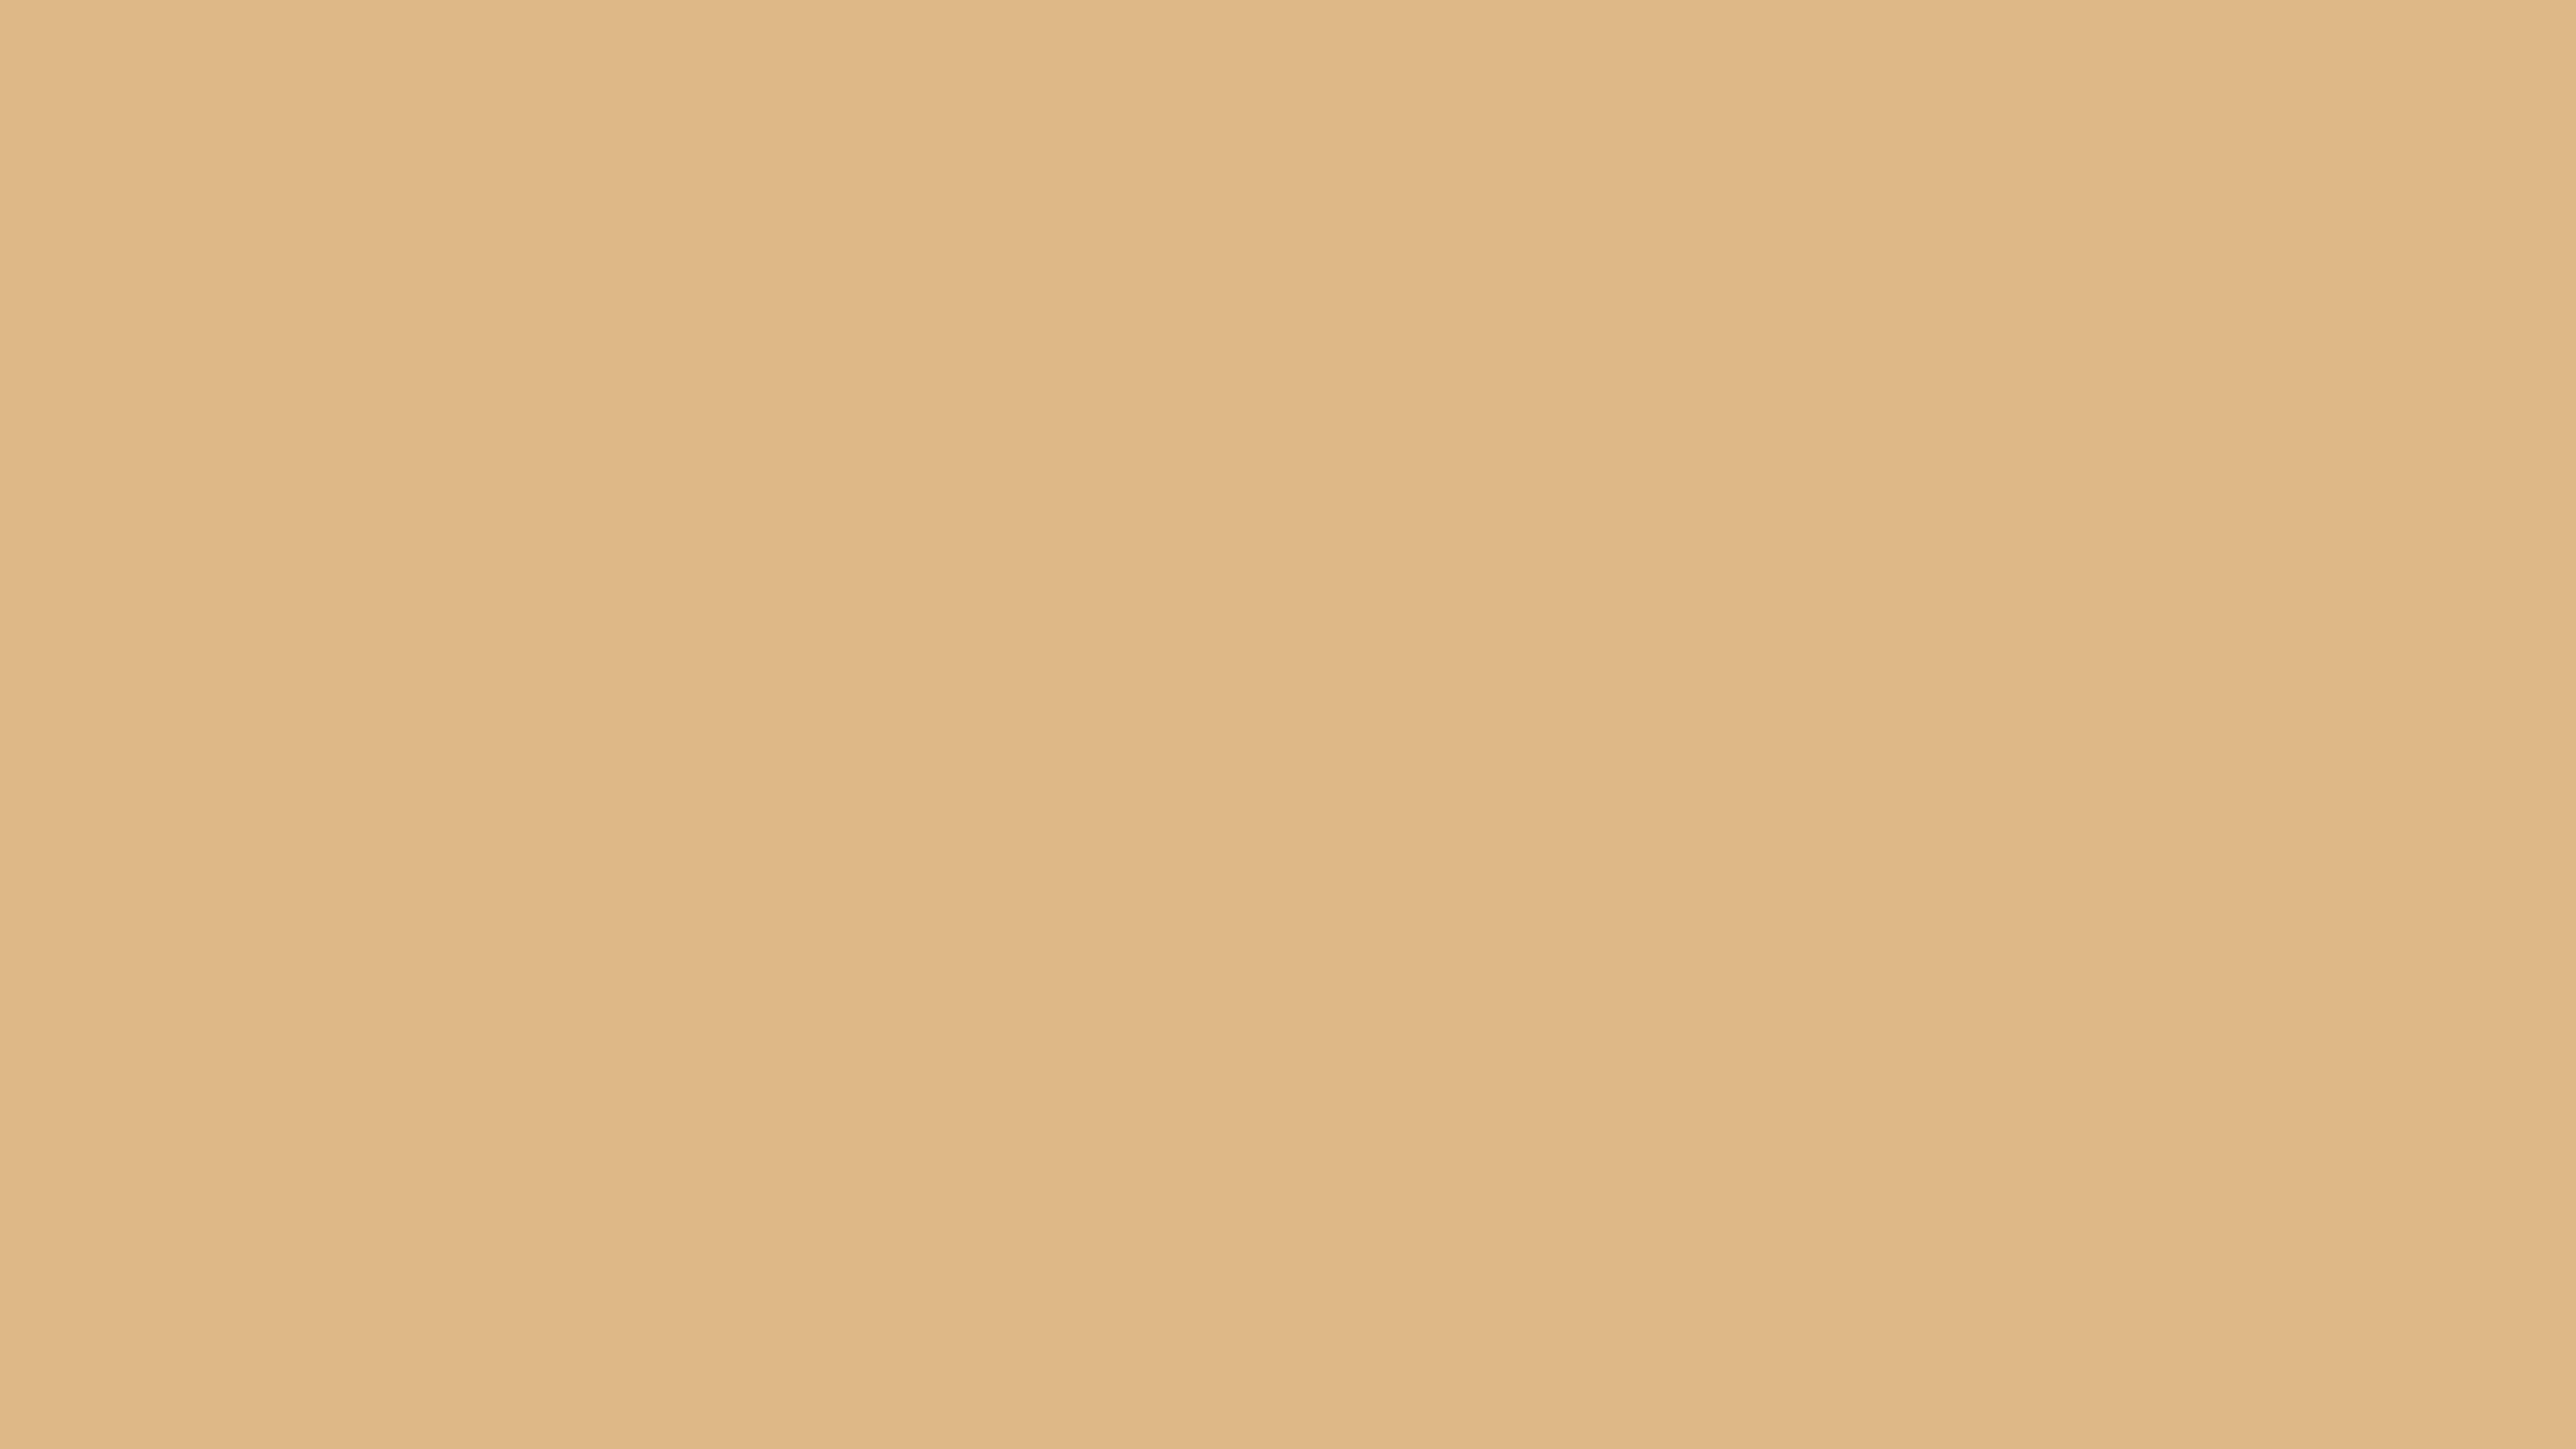 5120x2880 Burlywood Solid Color Background